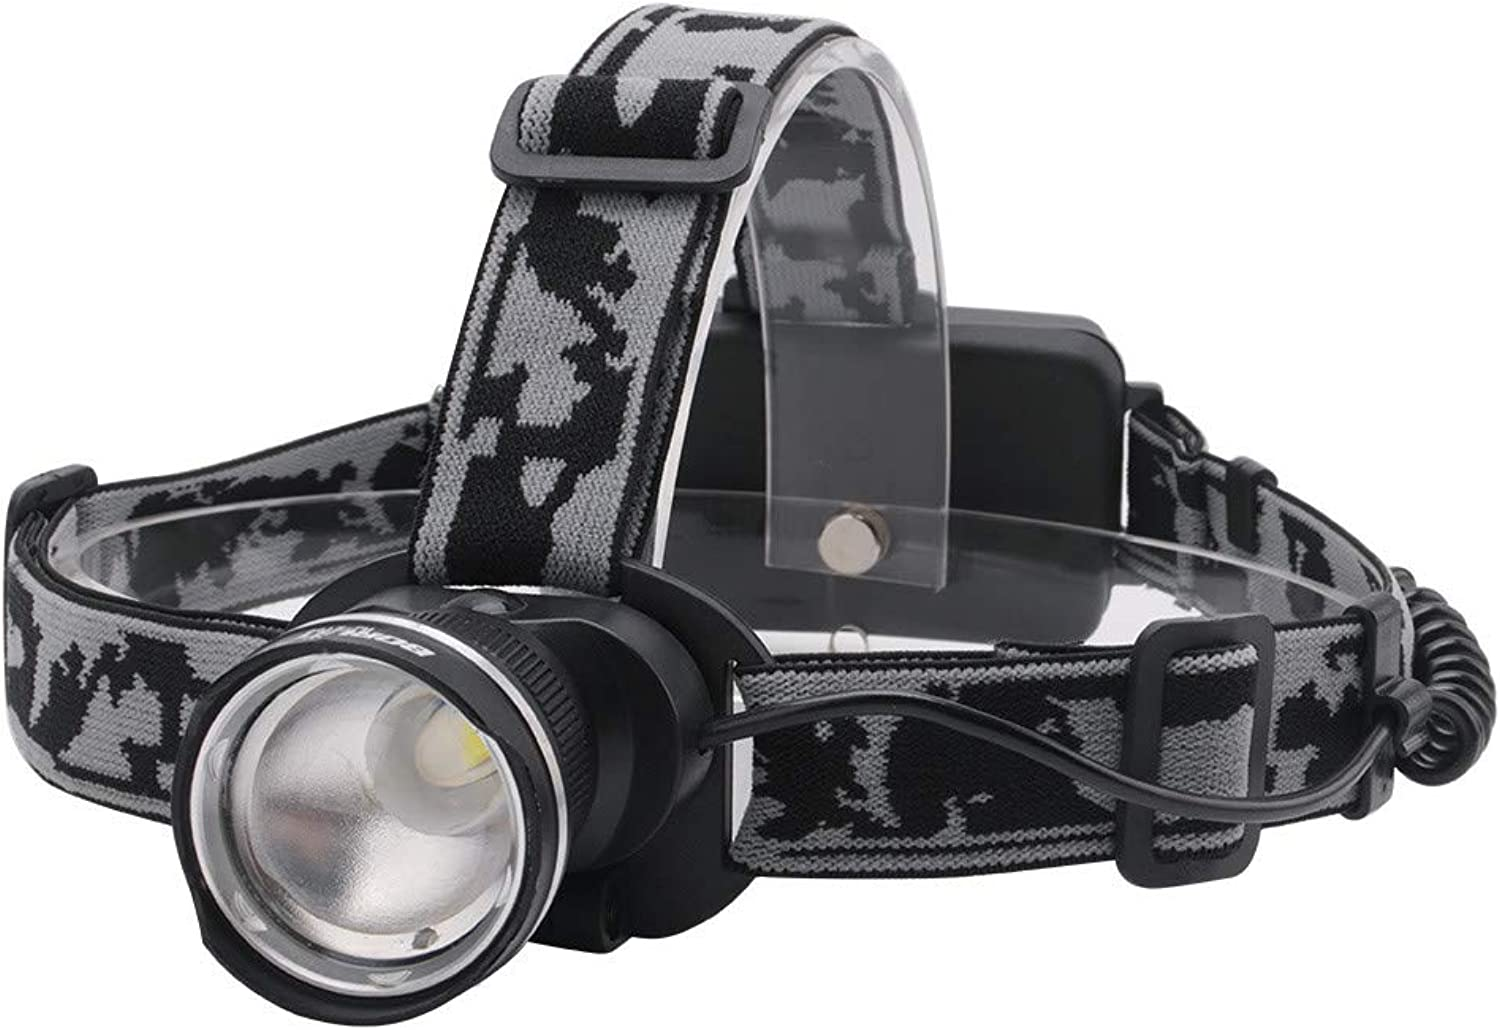 Stirnlampen 3-Mode T6 Led Headlamp Zoomable Headlight 18650 Battery Flashlight Waterproof Camping Fishing Head Torch